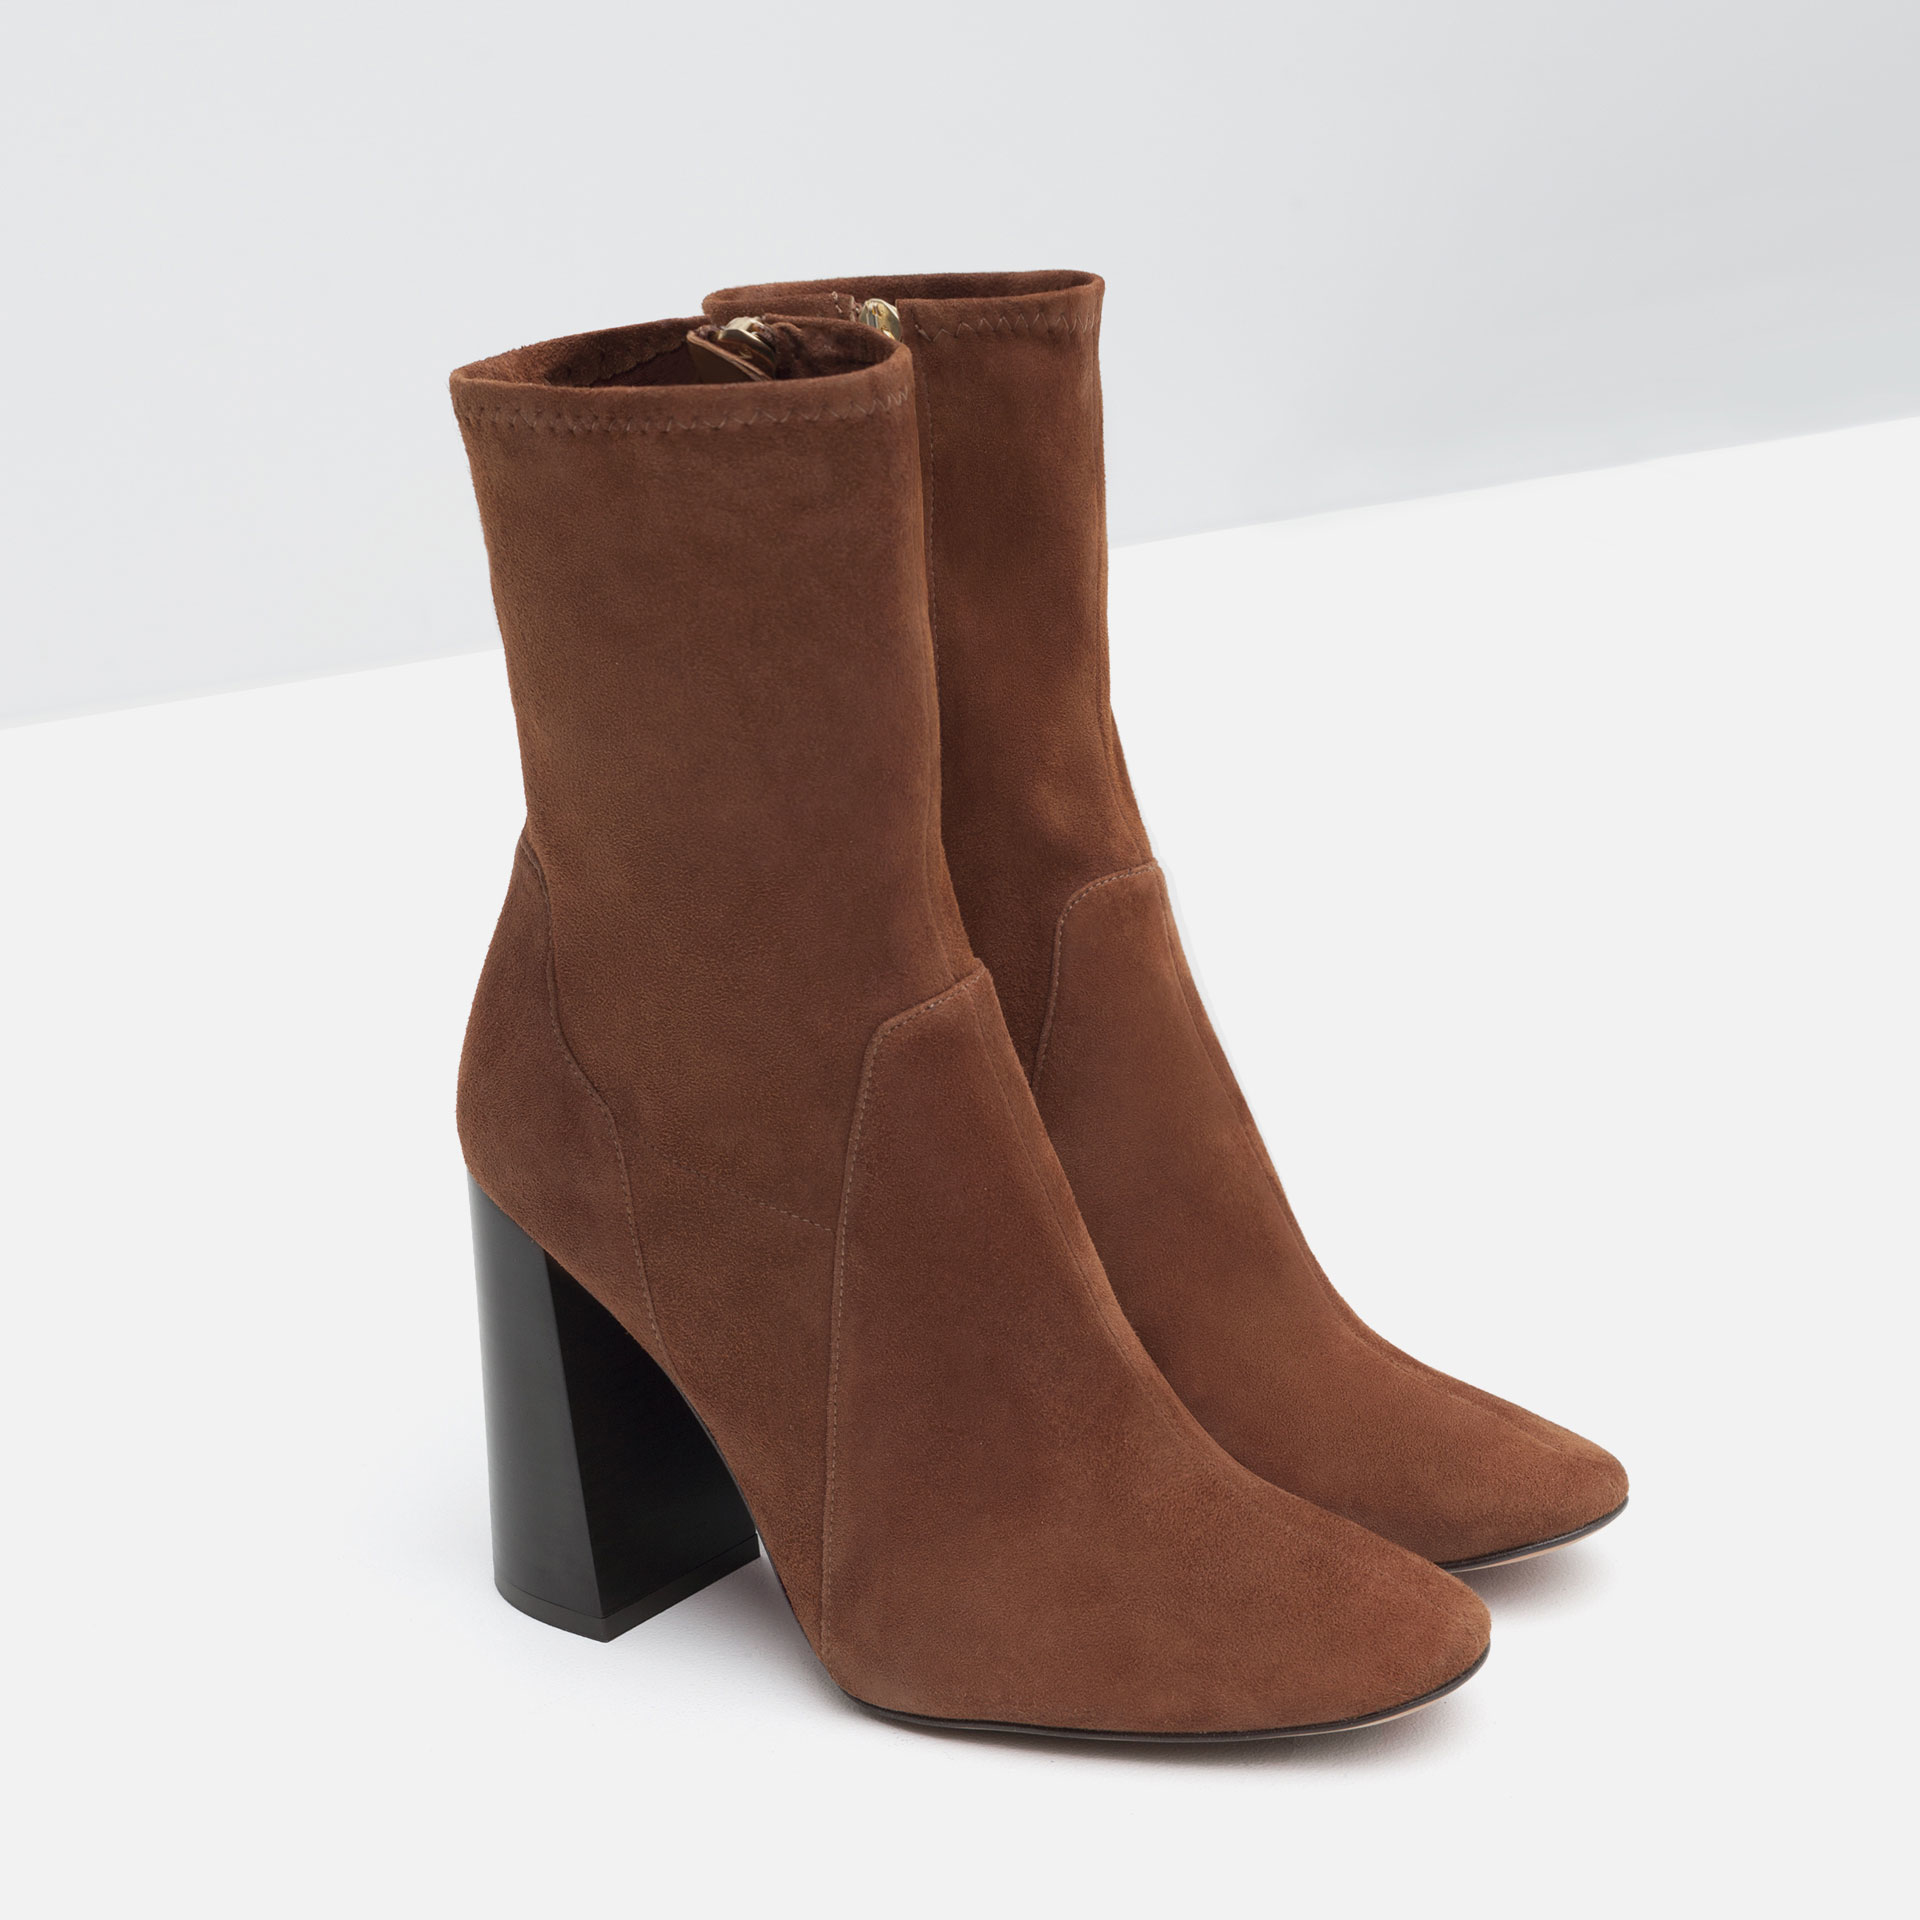 zara leather high heel ankle boots in brown lyst